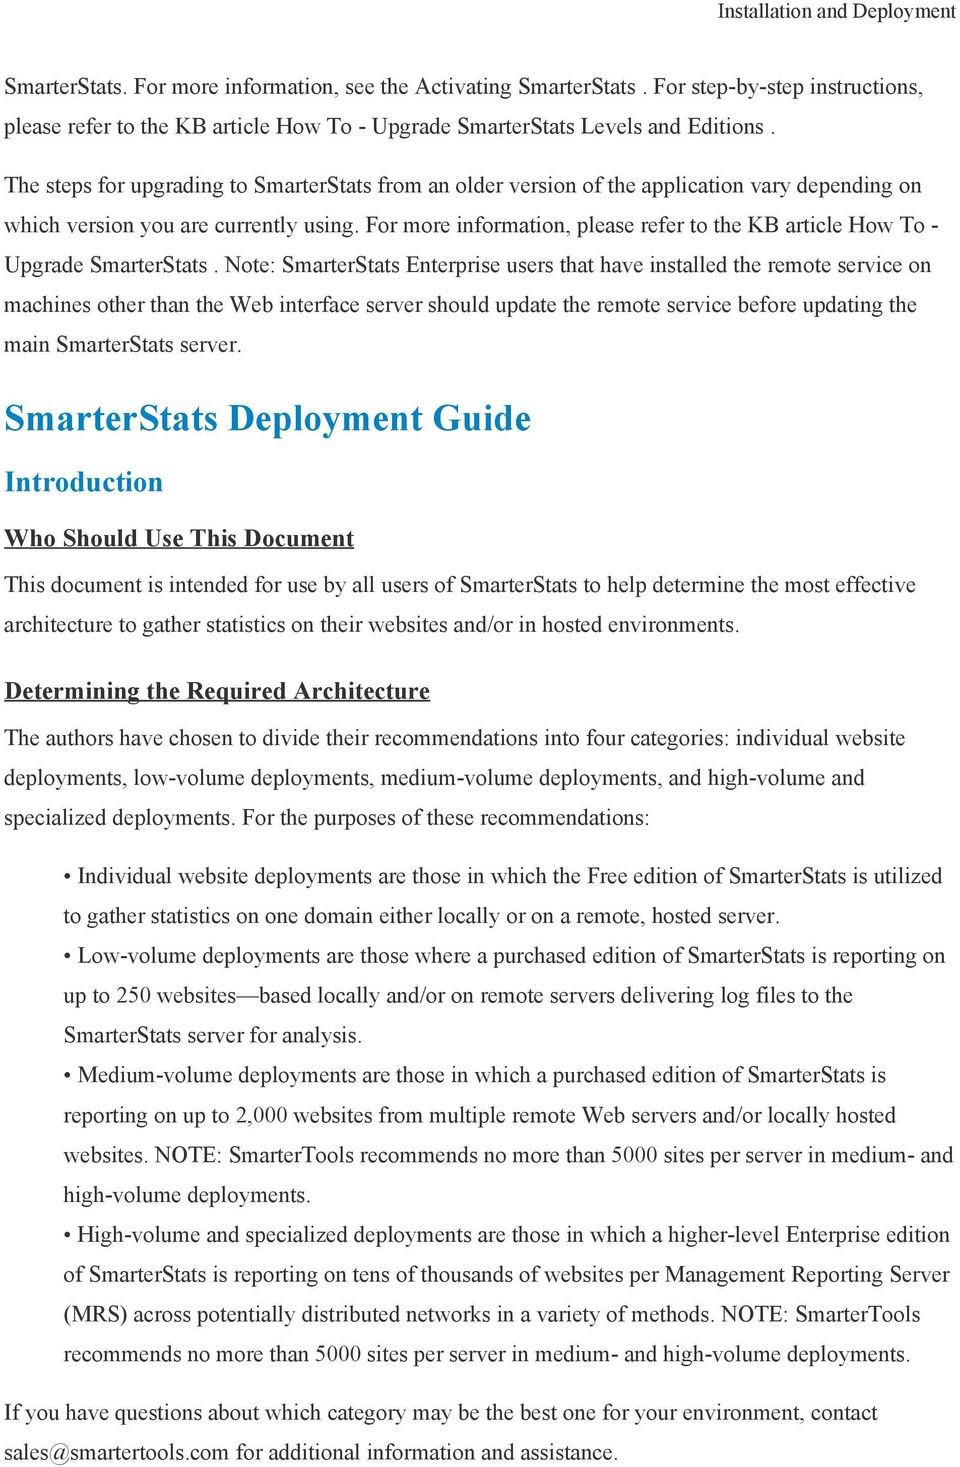 For more information, please refer to the KB article How To - Upgrade SmarterStats.